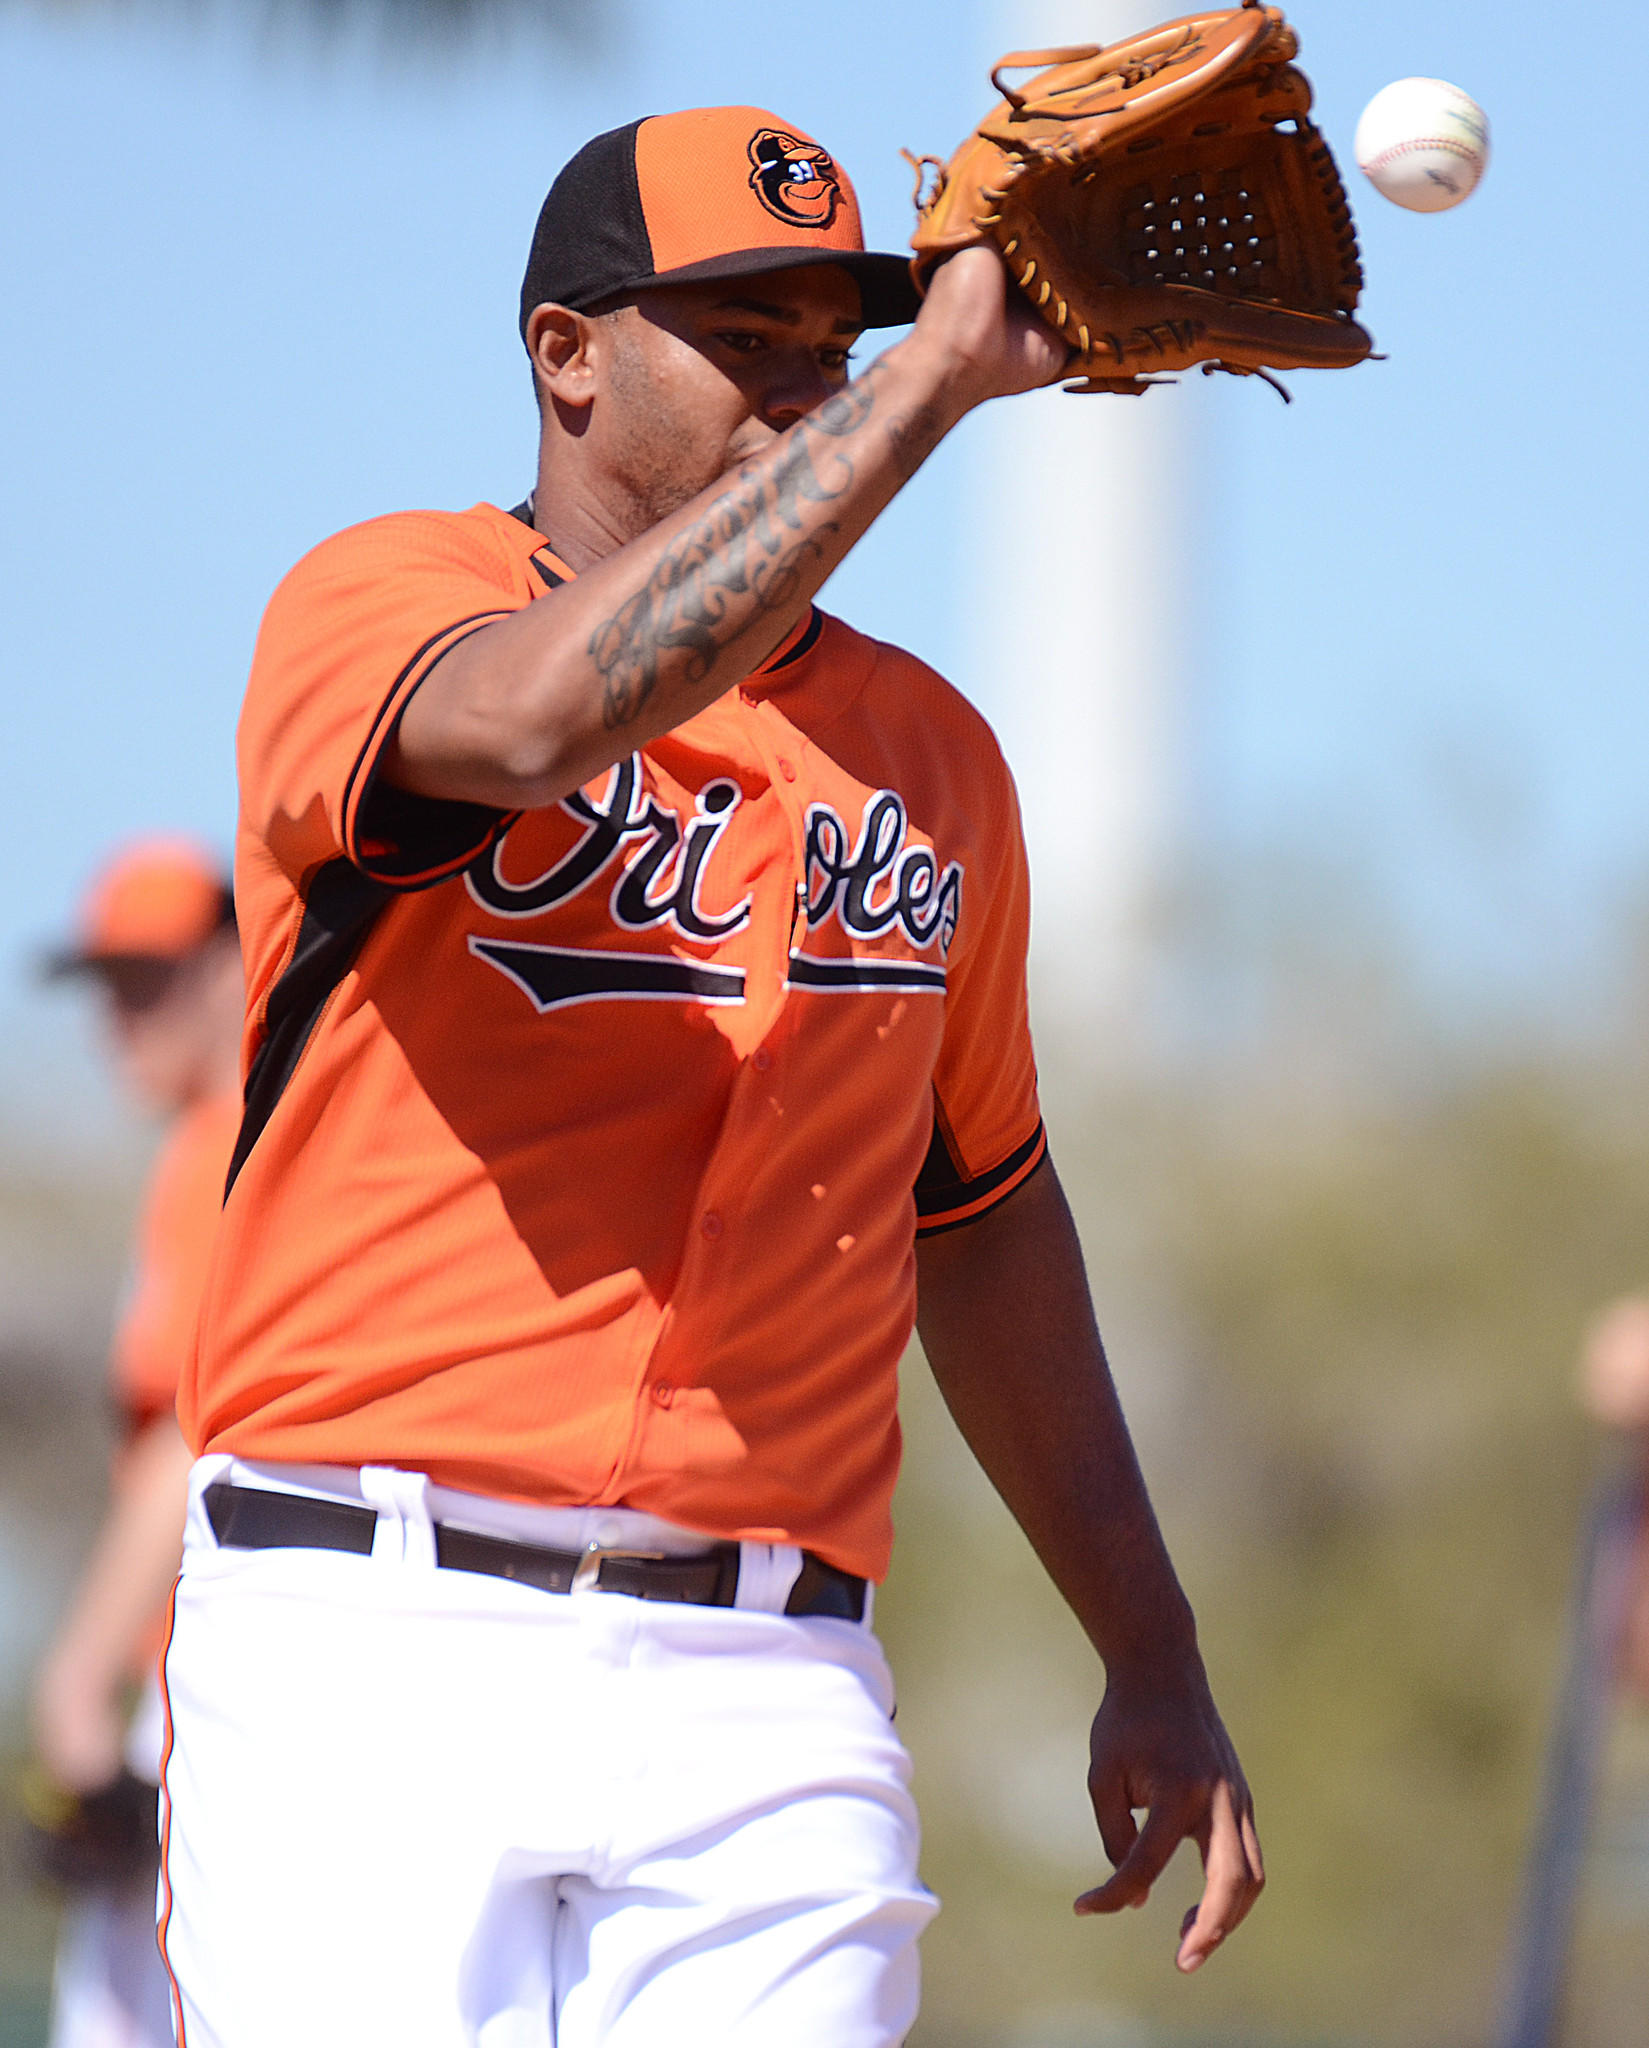 Orioles pitcher Kelvin De La Cruz work on fielding drills on Feb. 14 in Sarasota, Fla.